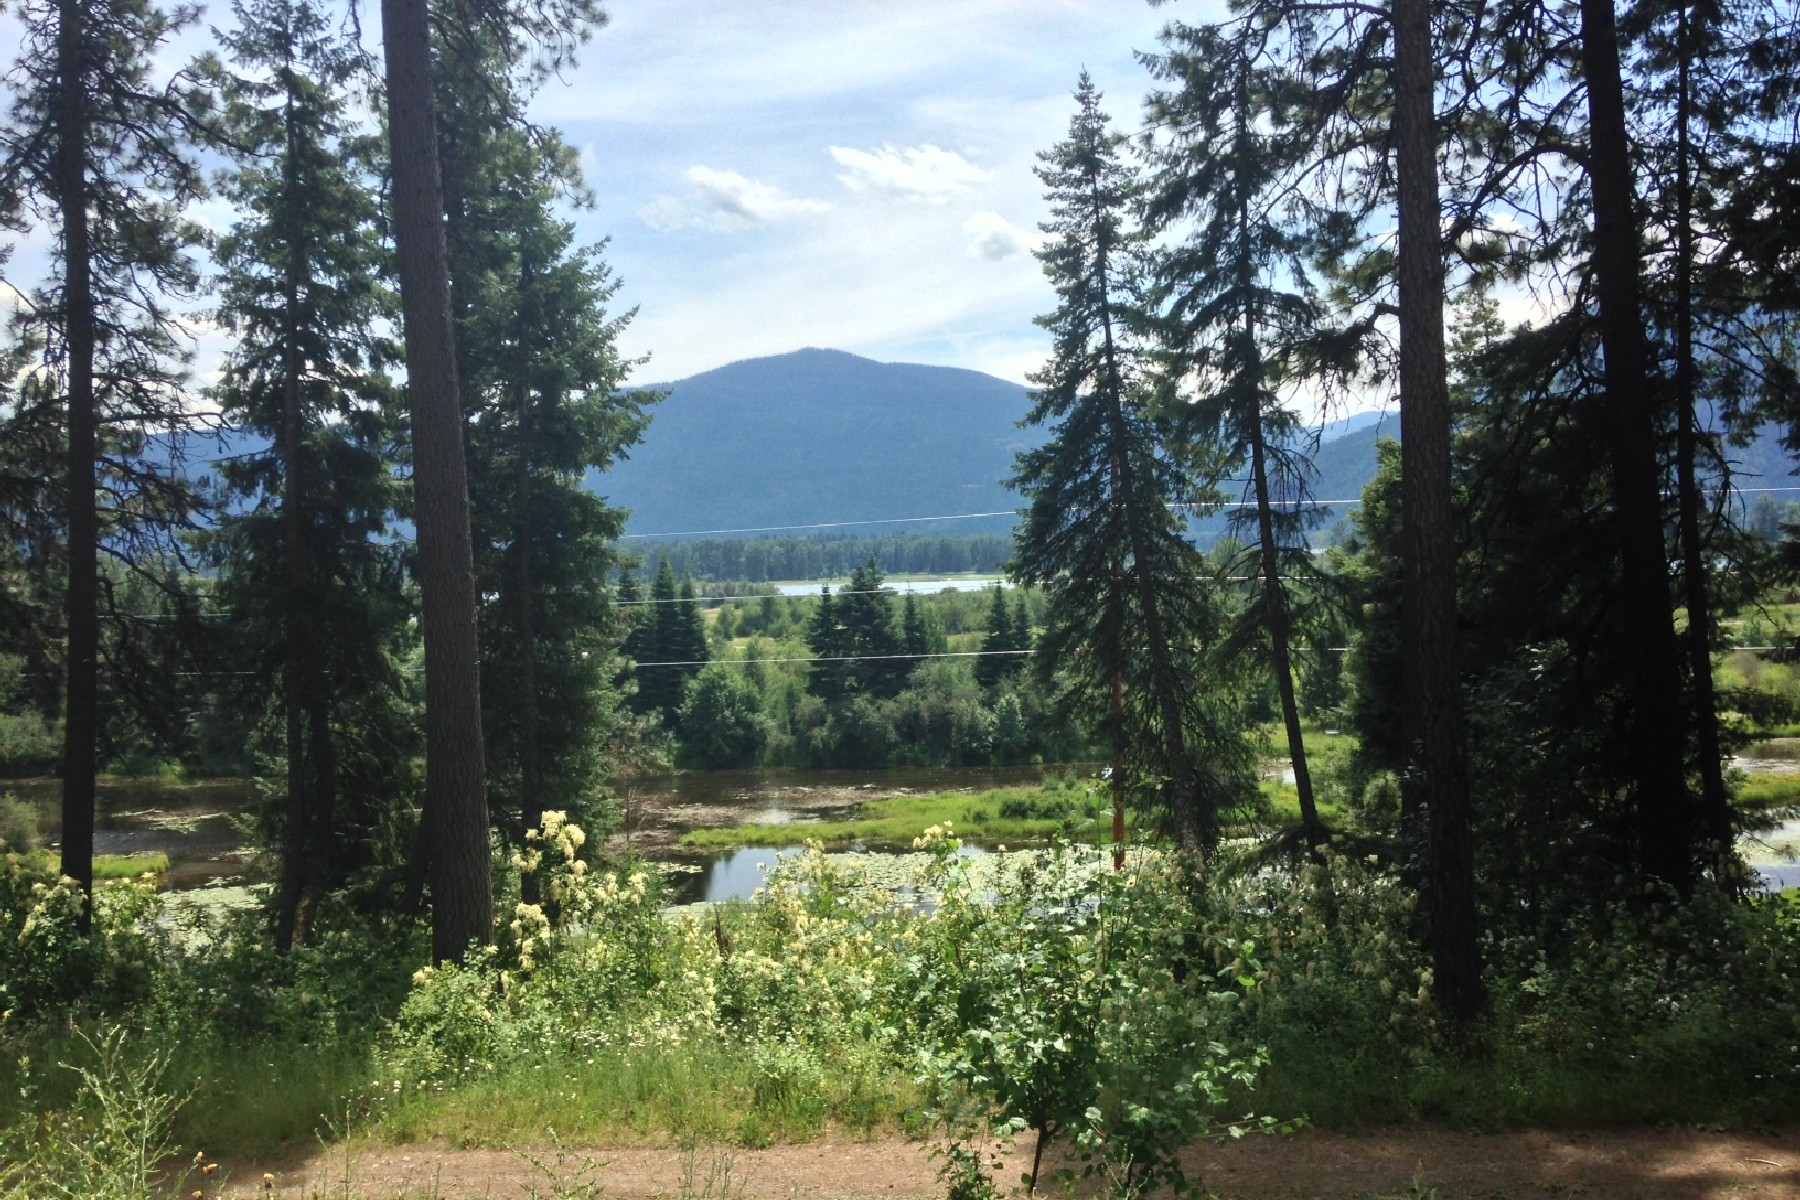 Land for Sale at Sweeping Views of Clark Fork River 52331 Hwy 200, Clark Fork, Idaho, 83811 United States